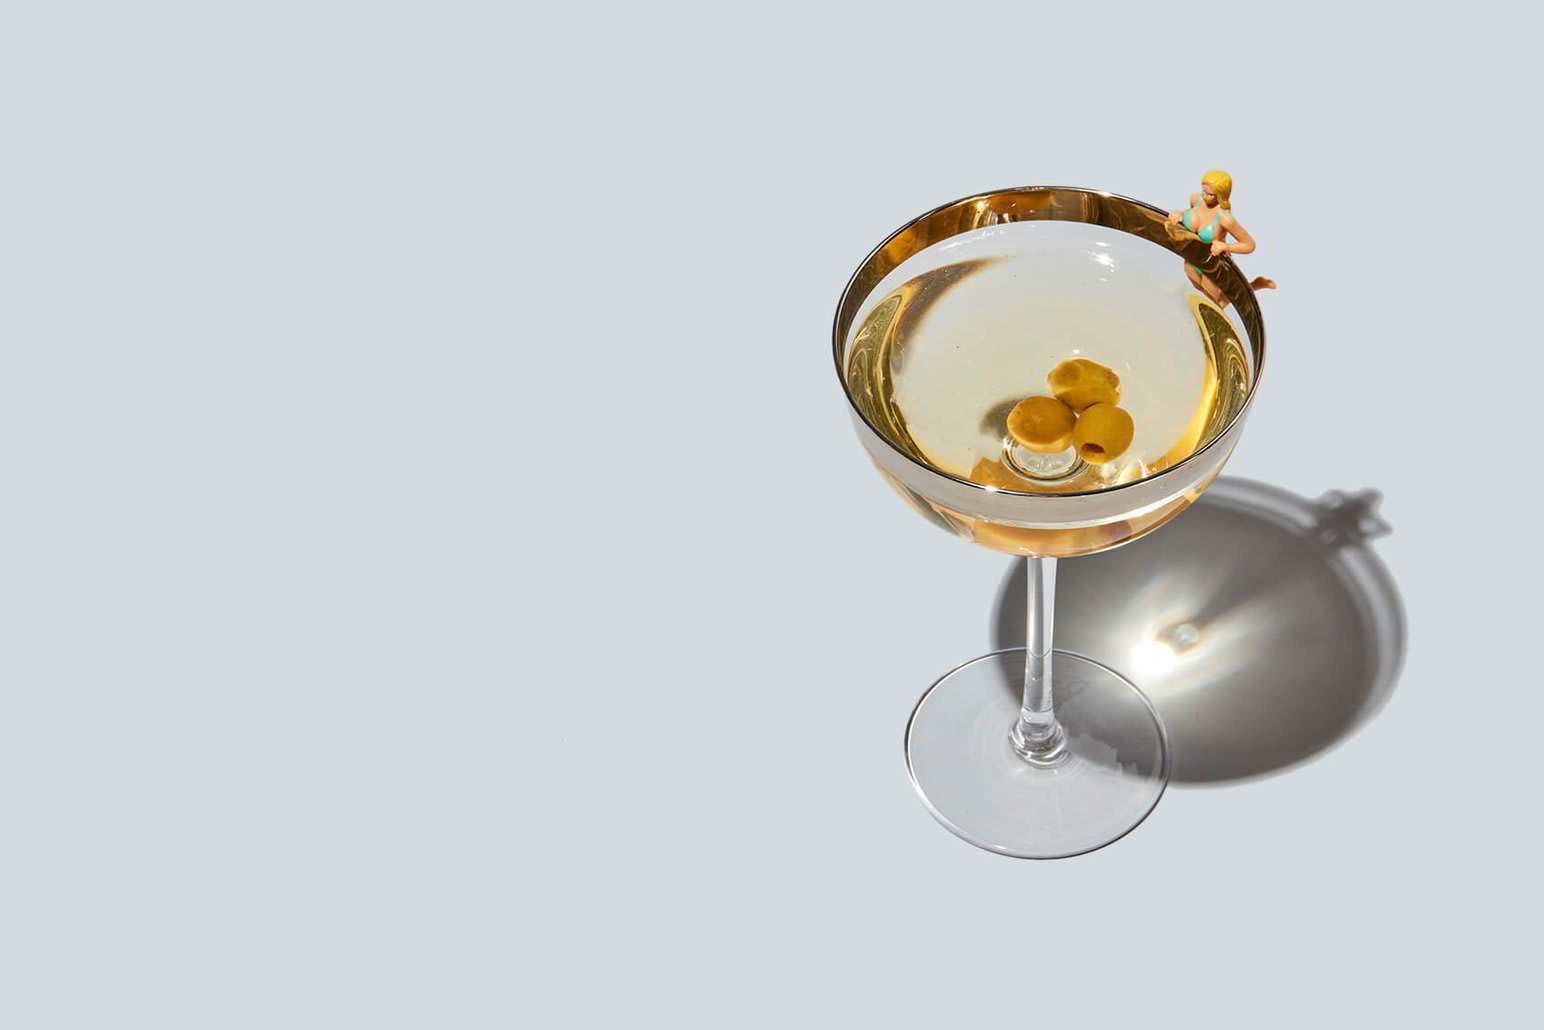 A small female figurine hangs off the edge of a cocktail glass